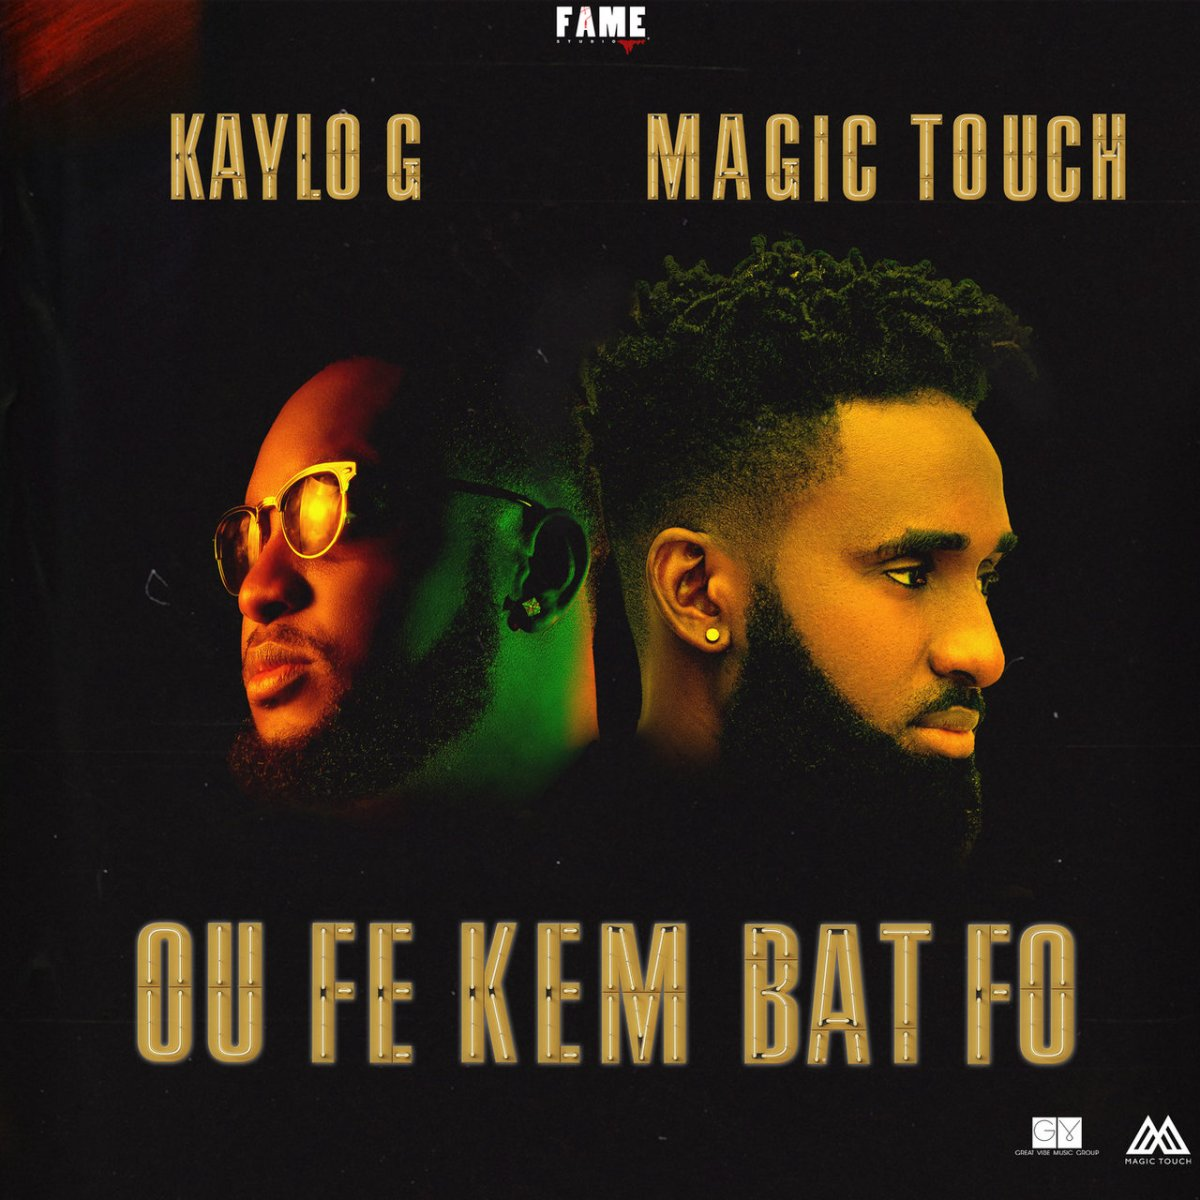 Magic Touch - Ou Fè Kem Bat Fo (ft. Kaylo G) (Cover)